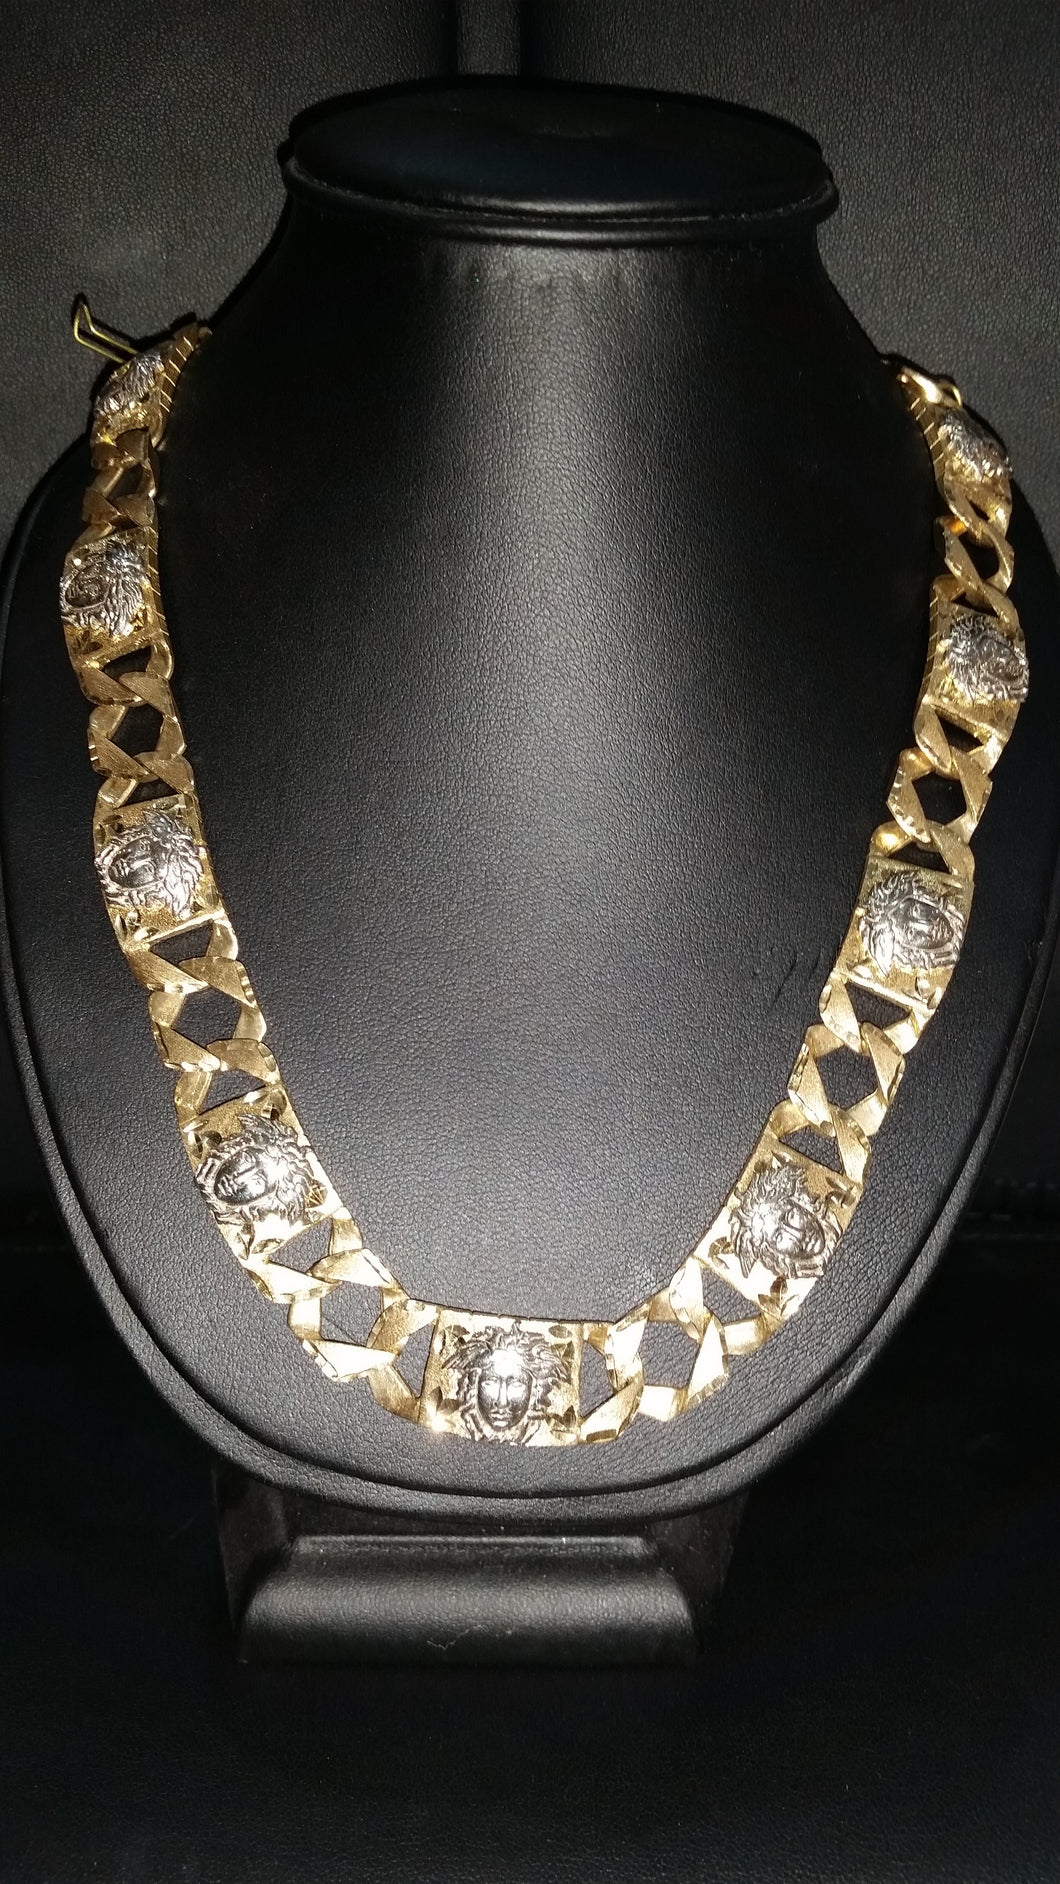 10kt Versace Link Chain 10KVER1